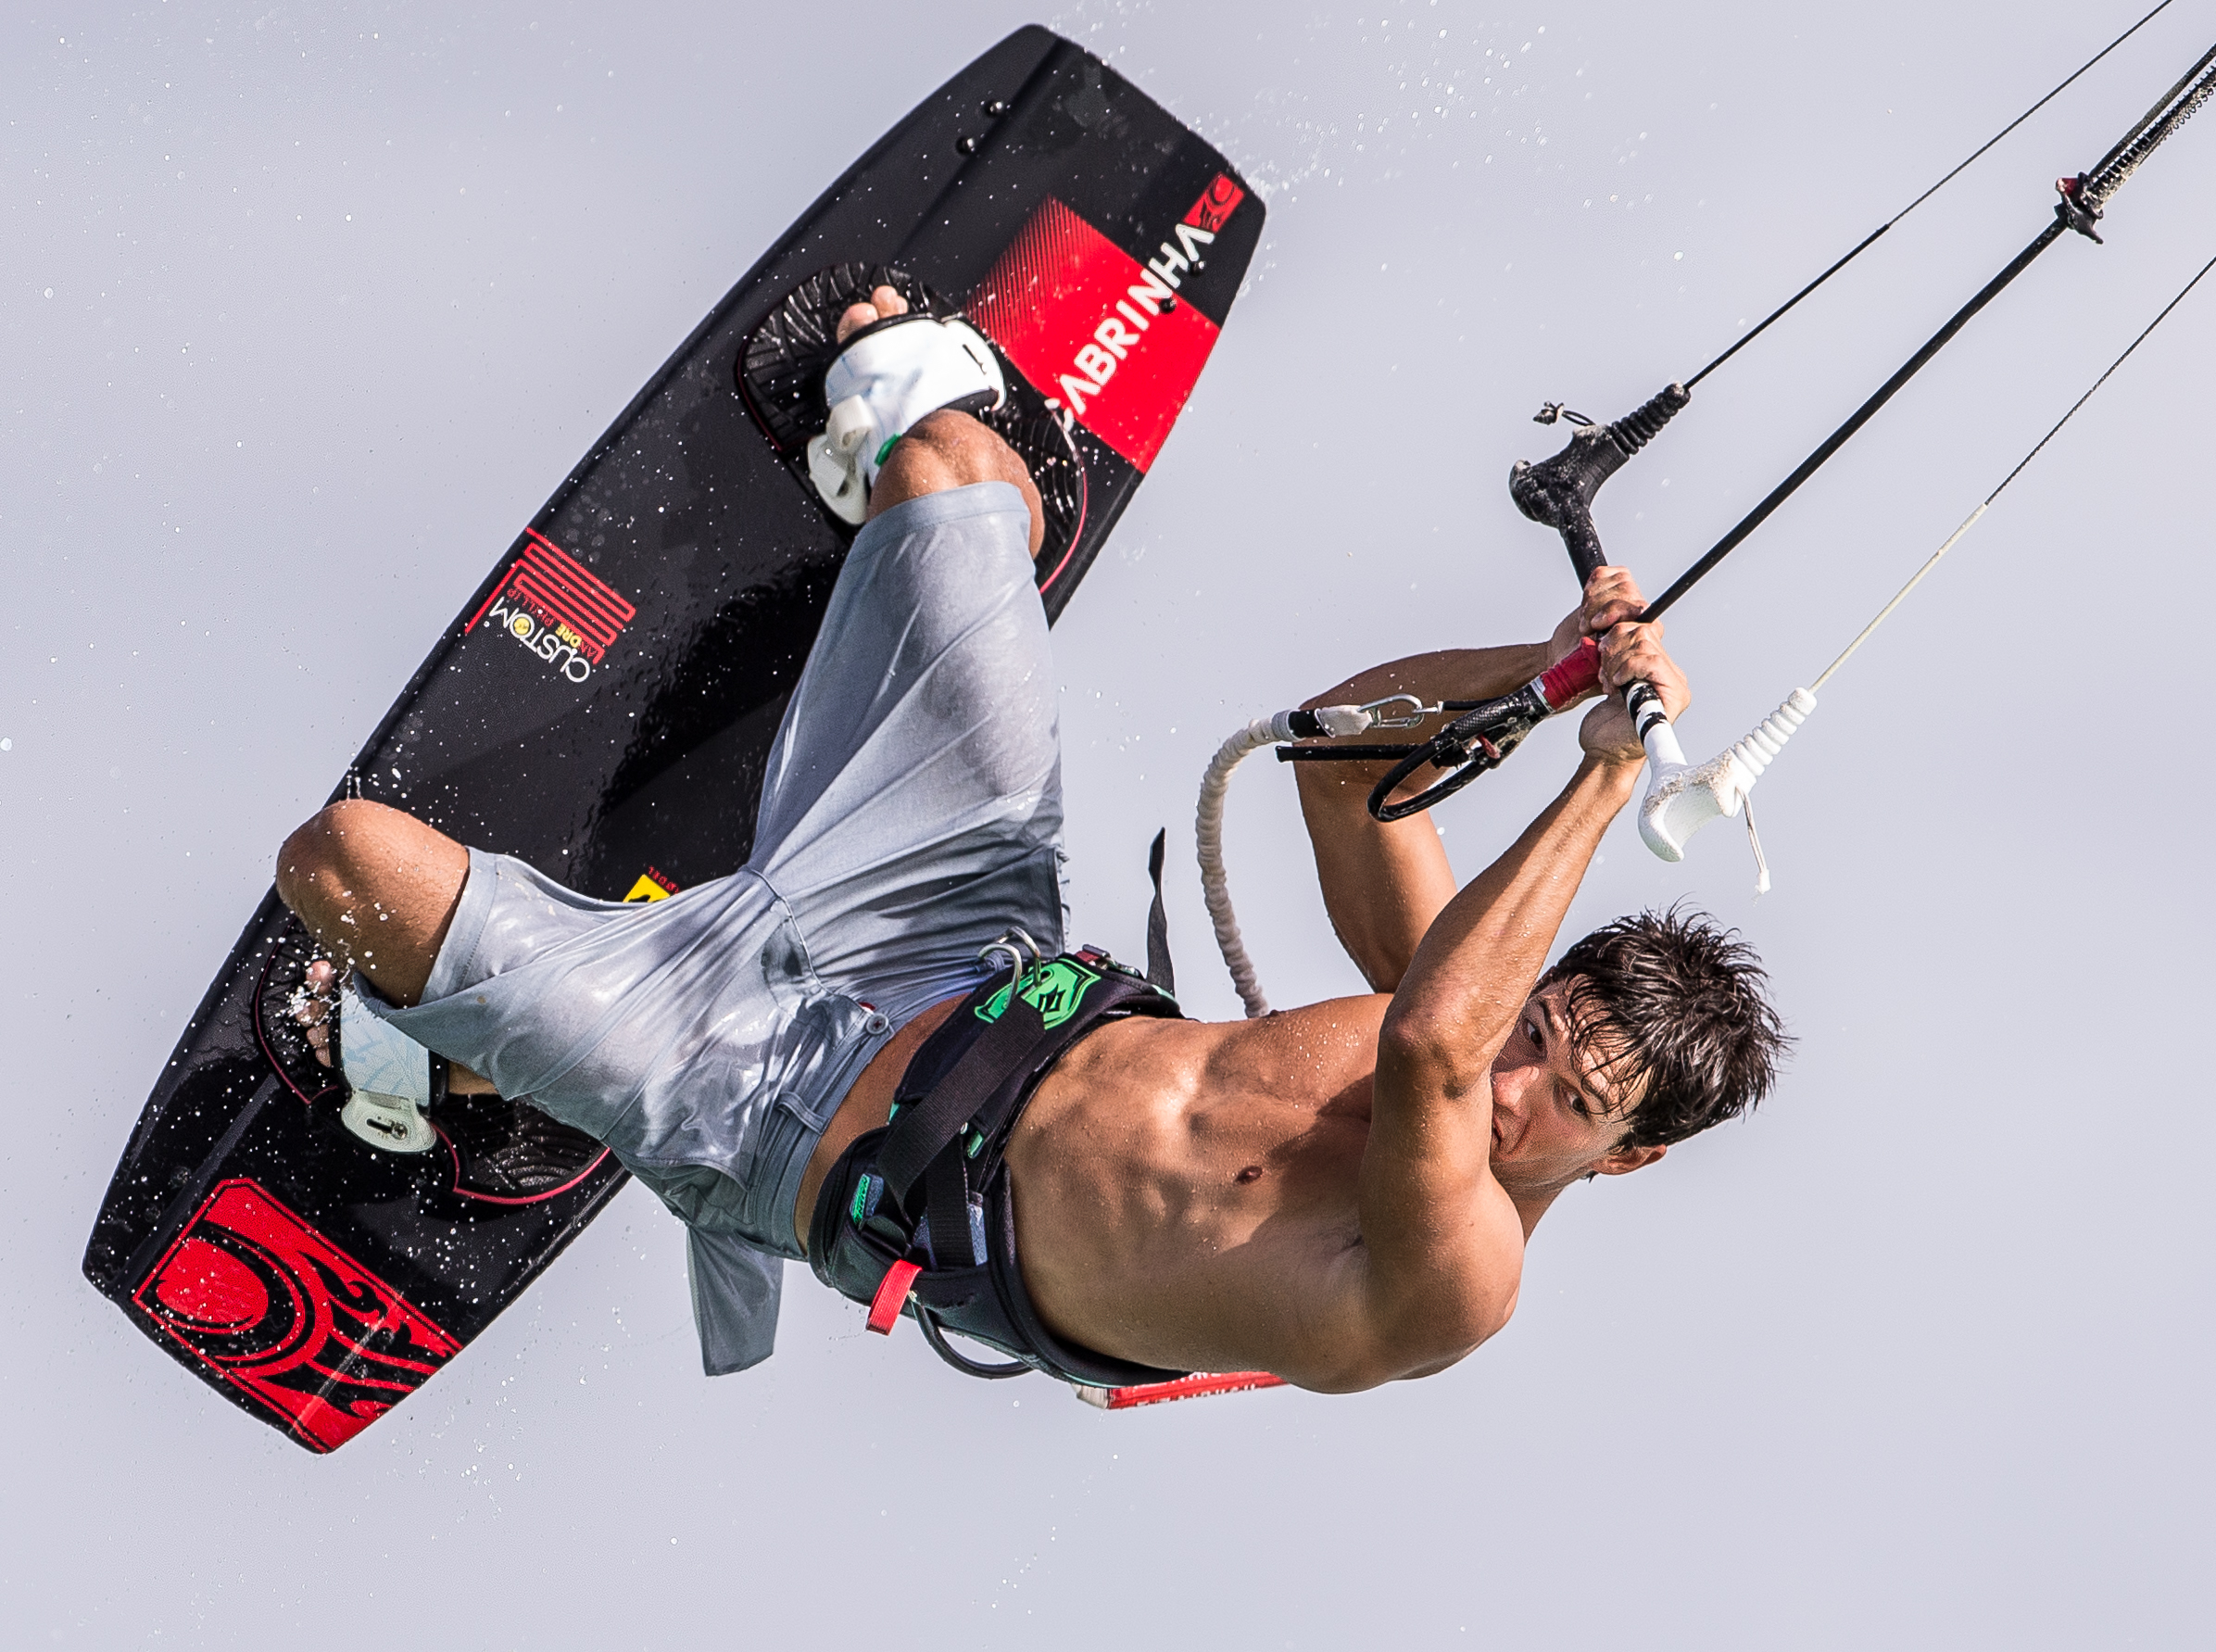 Scott Smit Aruba Kitesurfing Photo